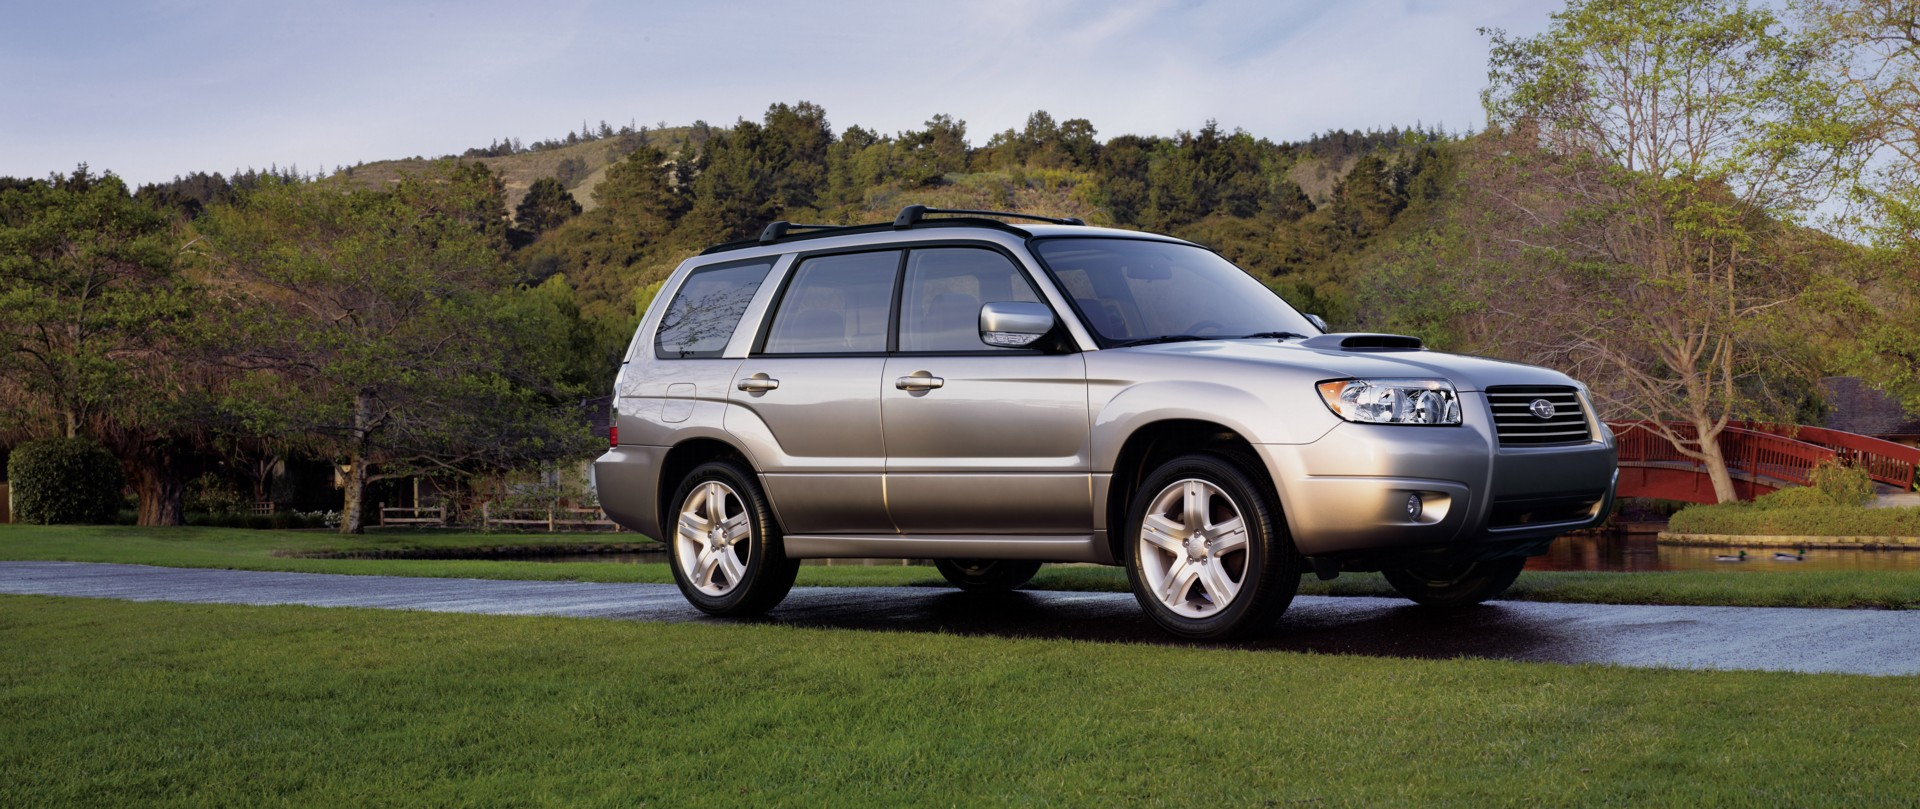 2007 Subaru Forester Pictures, History, Value, Research ...